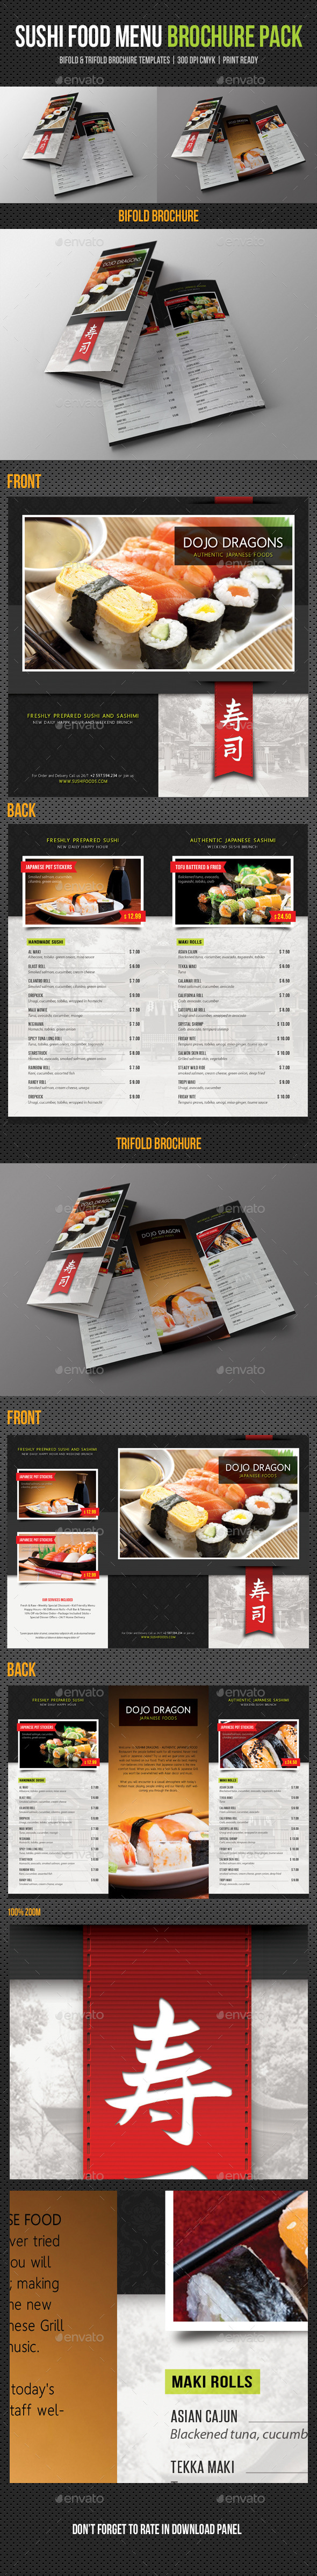 Sushi Restaurant Menu Brochure Pack - Food Menus Print Templates